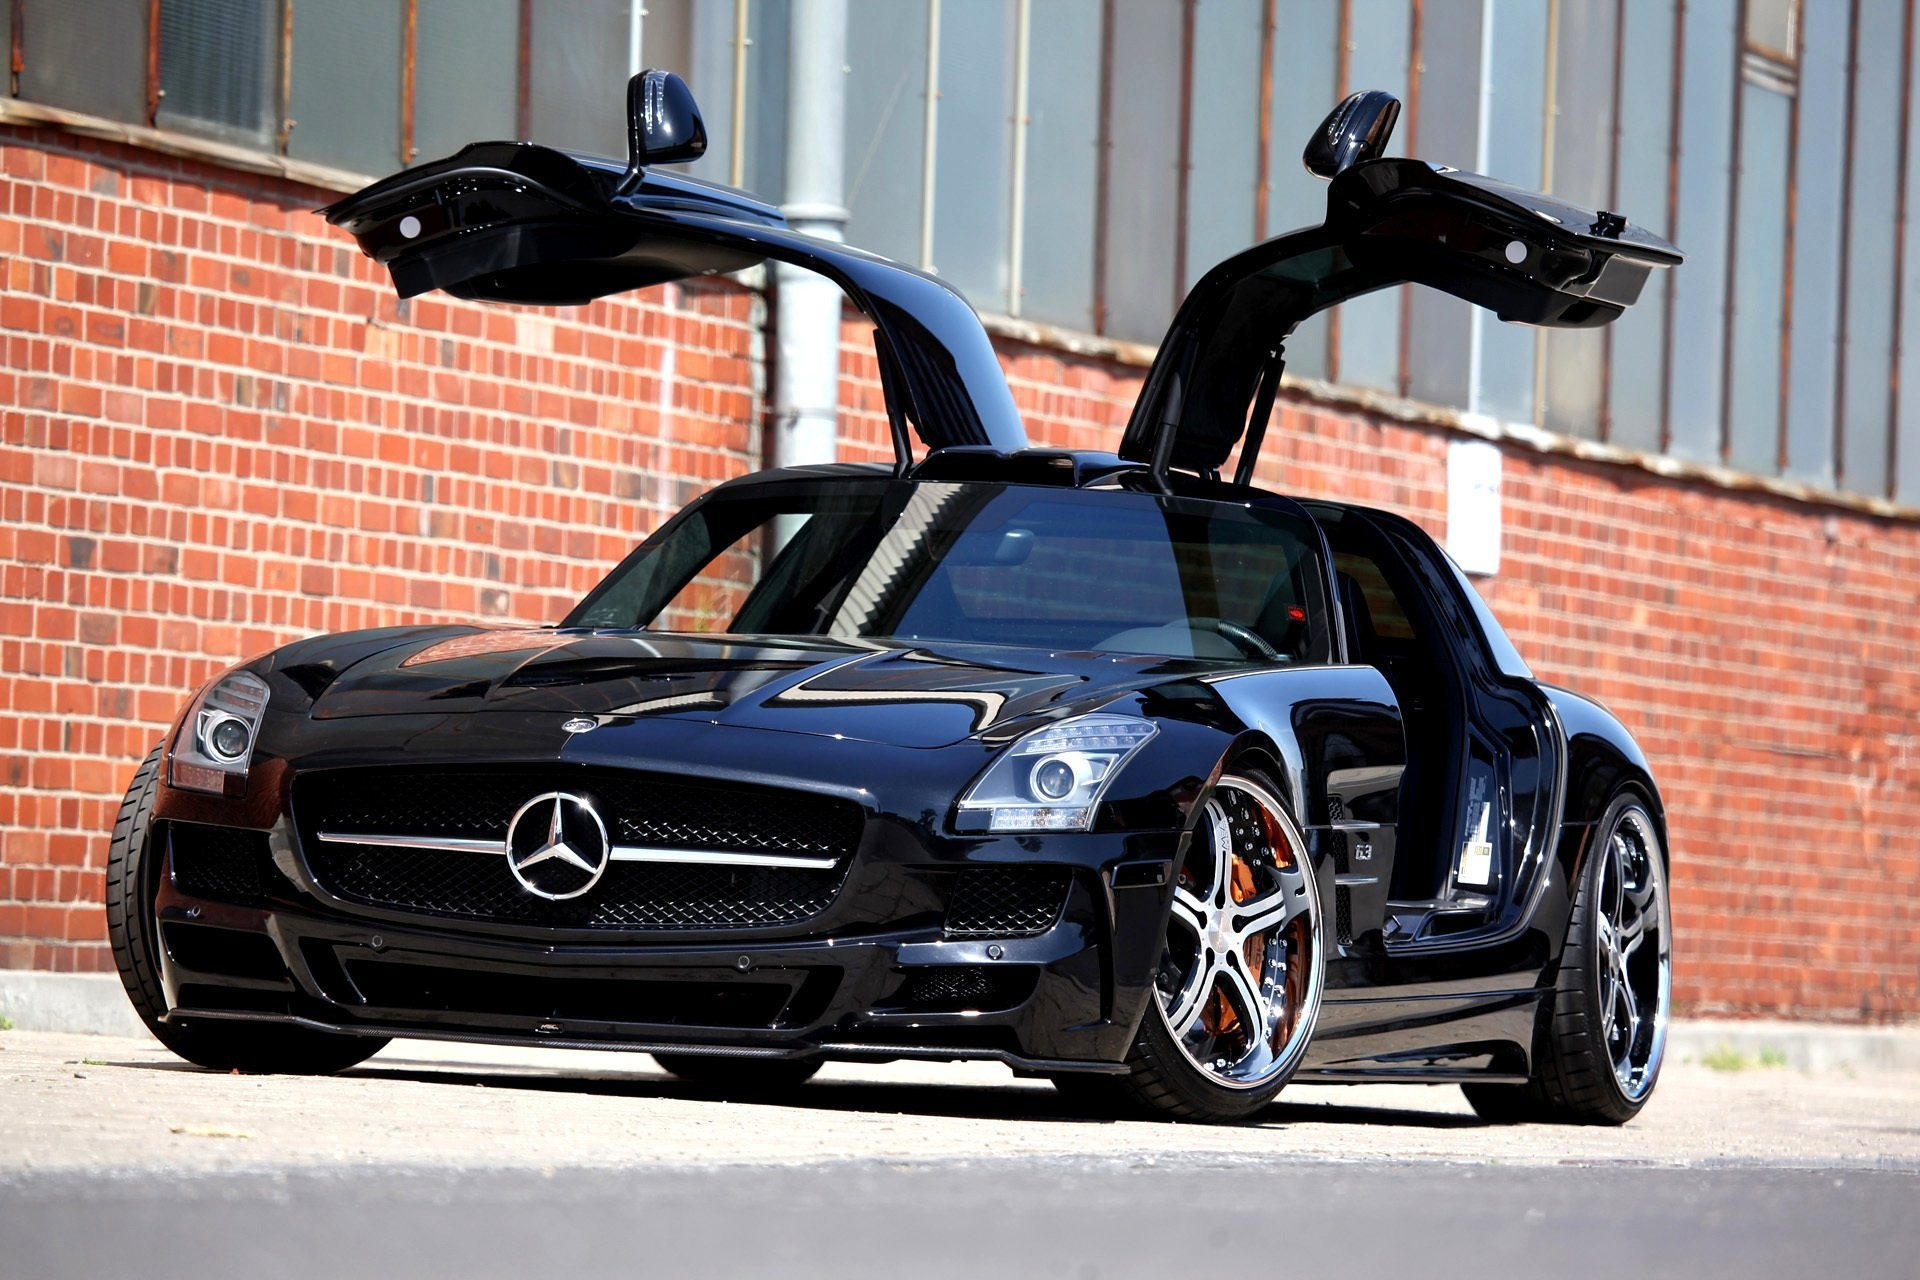 1920x1280 mercedes mercedes benz sls amg mec-design car photo cars cars wallpapers  cars auto wallpapers